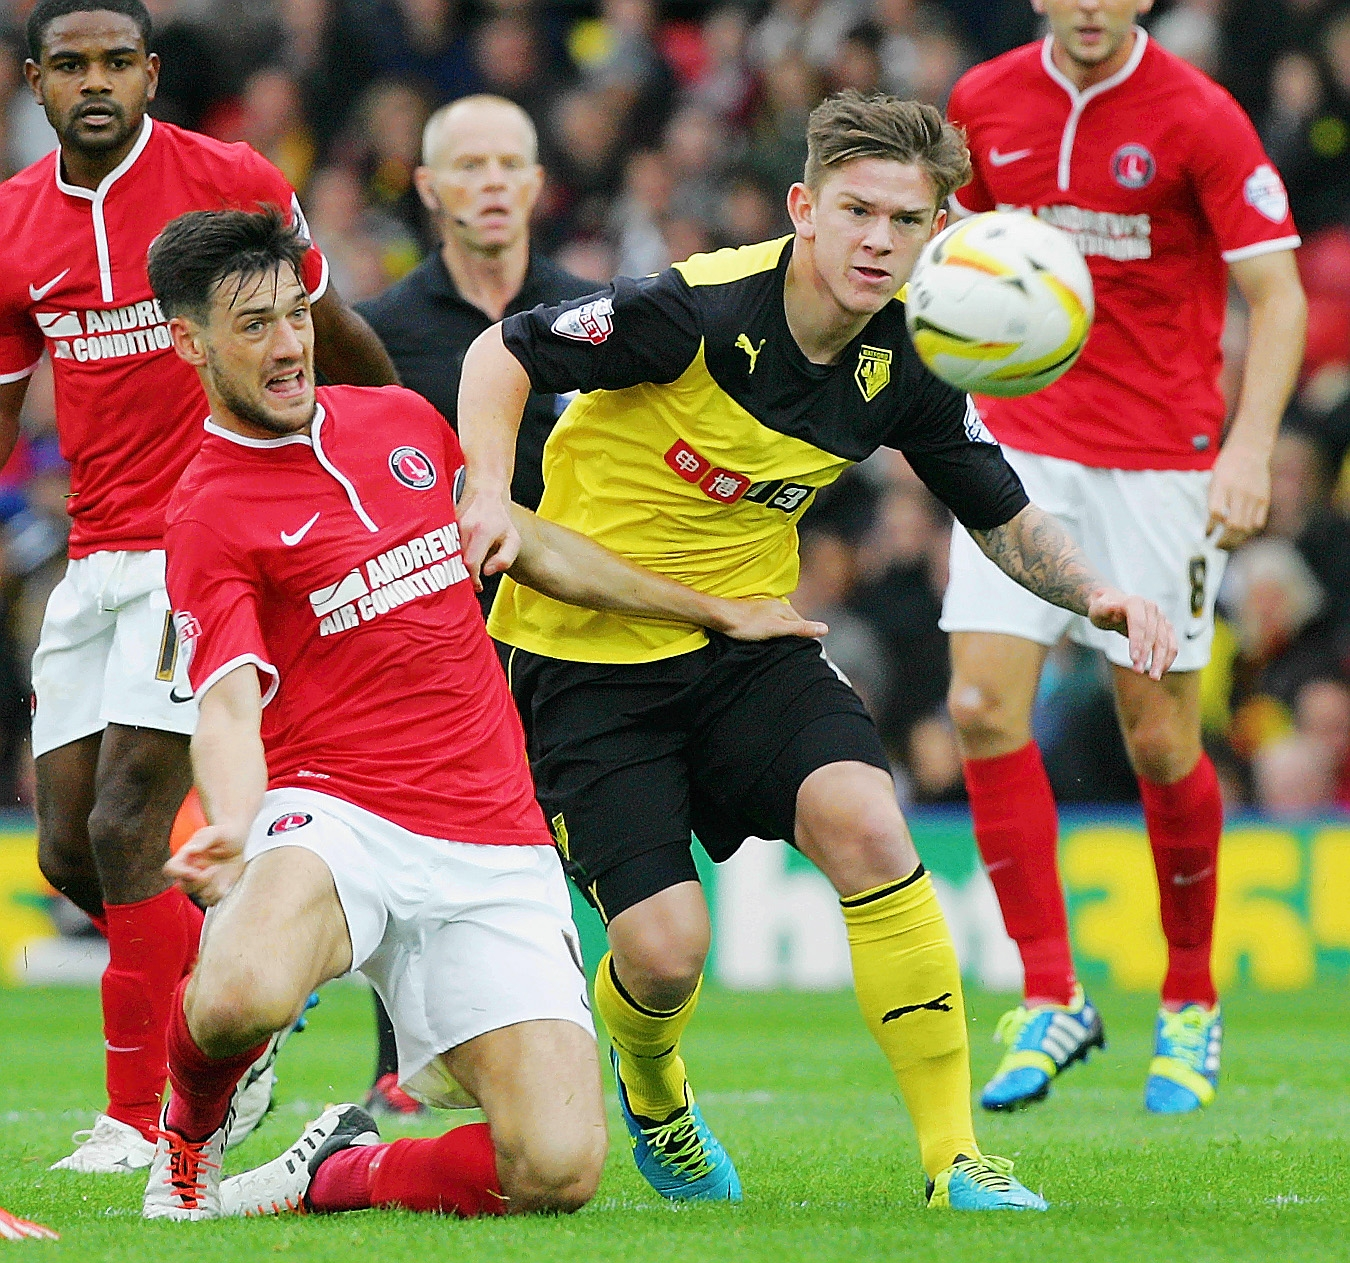 Charlton's Johnnie Jackson up against Watford's Sean Murray earlier this season. Picture: Action Images